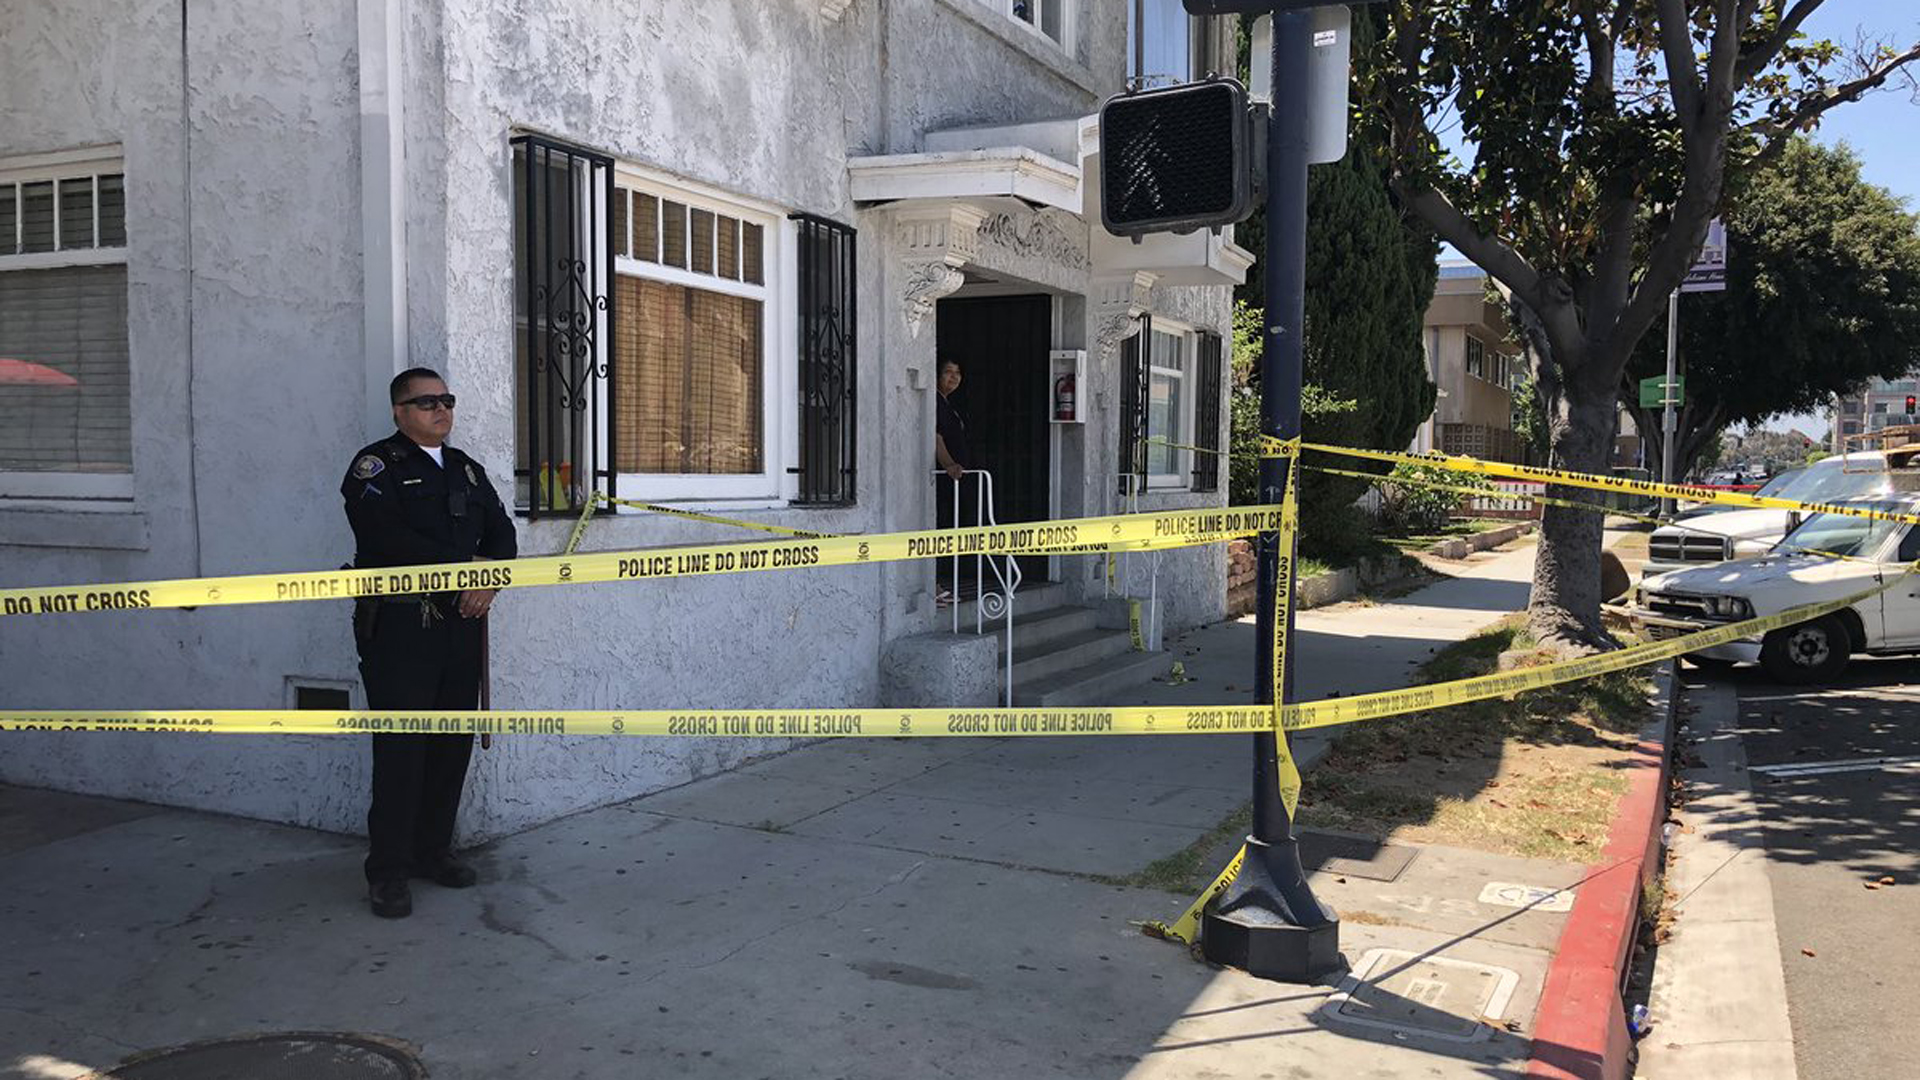 Police investigated a shooting that left a woman dead in Long Beach on July 11, 2019. (Credit: Carlos Saucedo / KTLA)